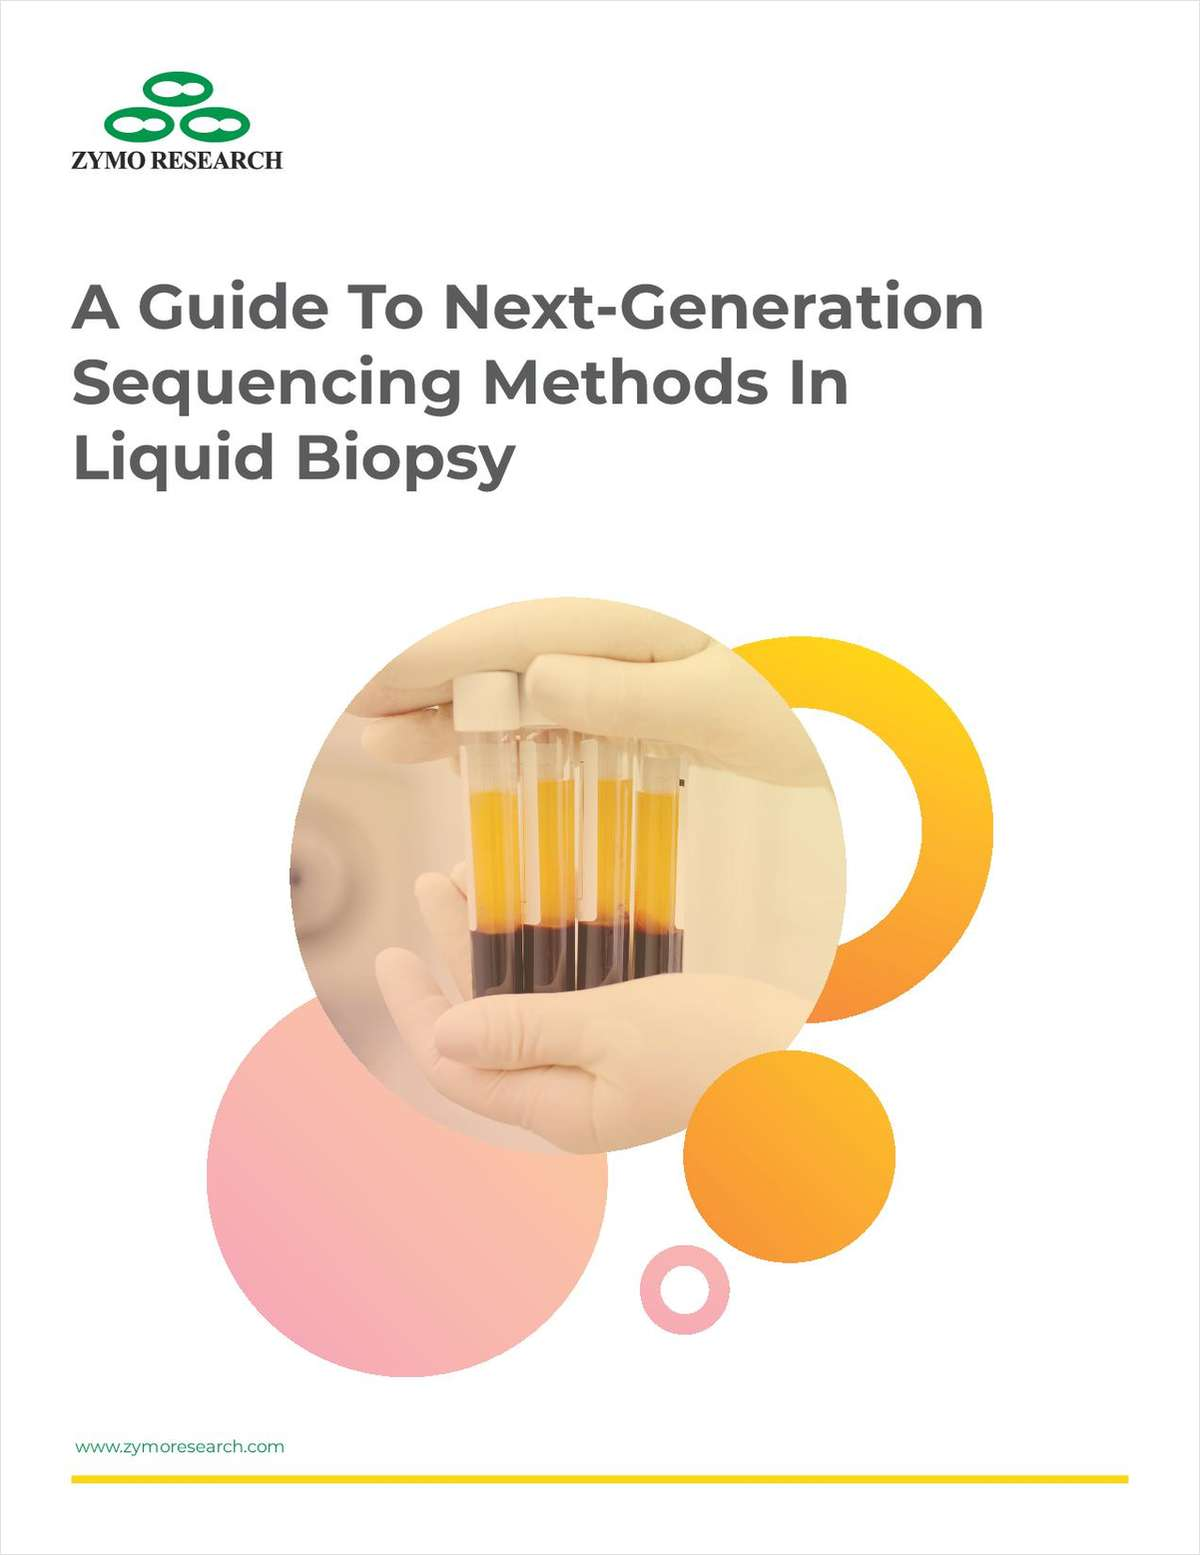 A Guide to Next-Generation Sequencing Methods in Liquid Biopsy